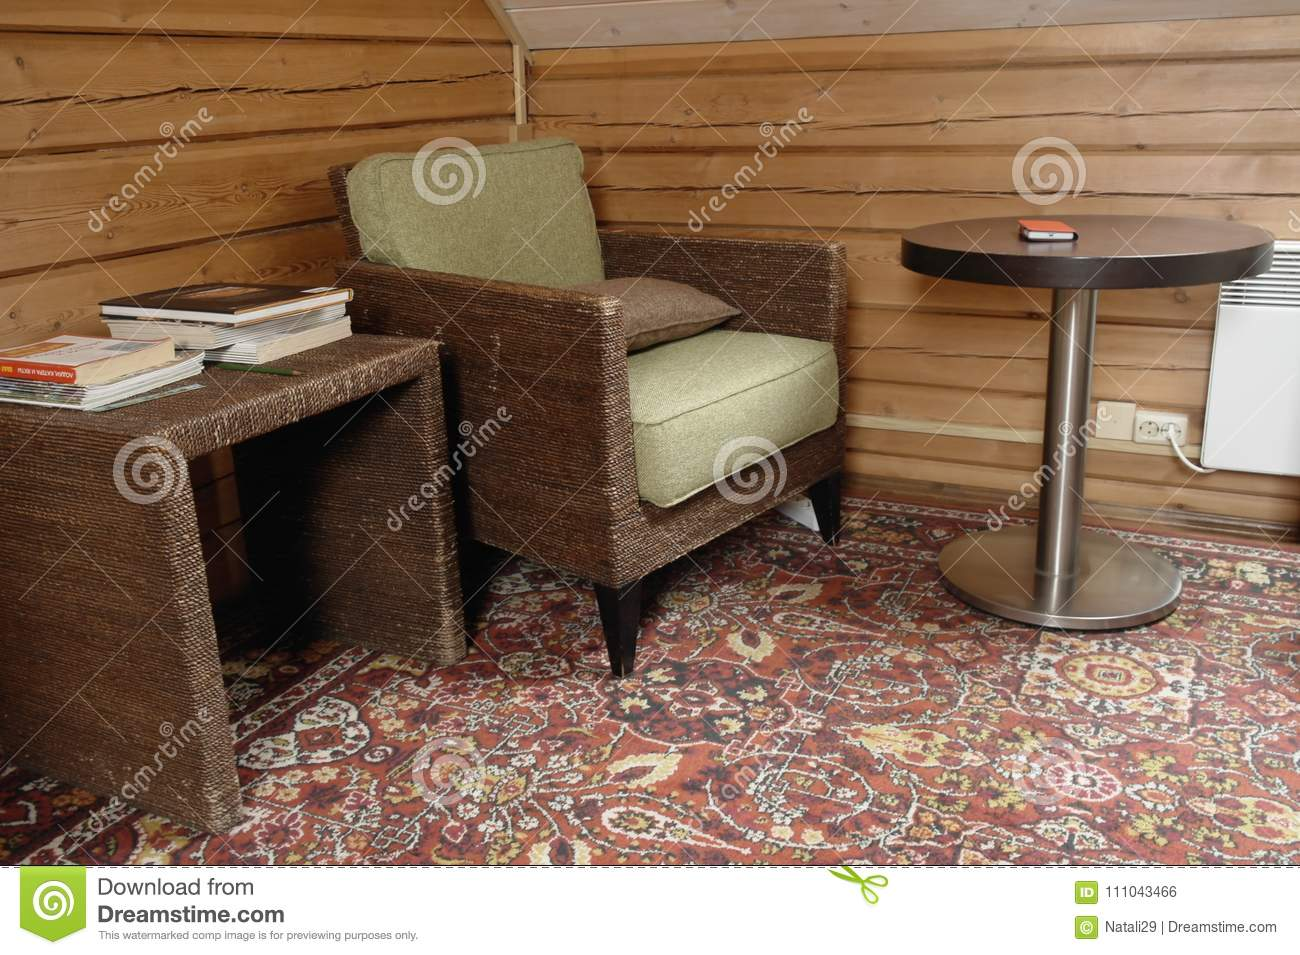 Ordinaire Download Old Armchair And Coffee Table Stock Photo   Image Of Chair,  Rustic: 111043466